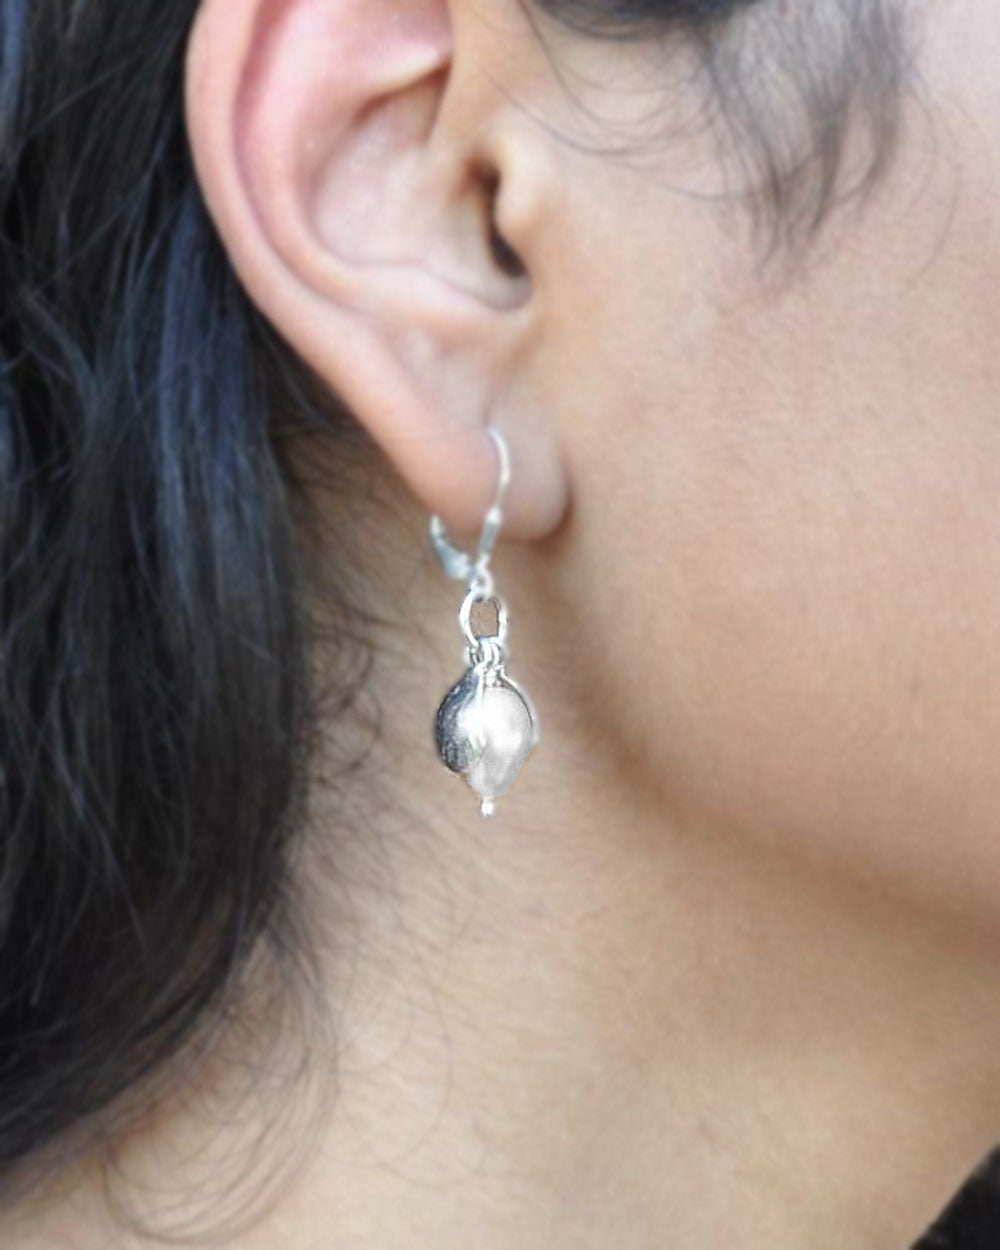 White Pearl Dangling Earrings in Sterling Silver